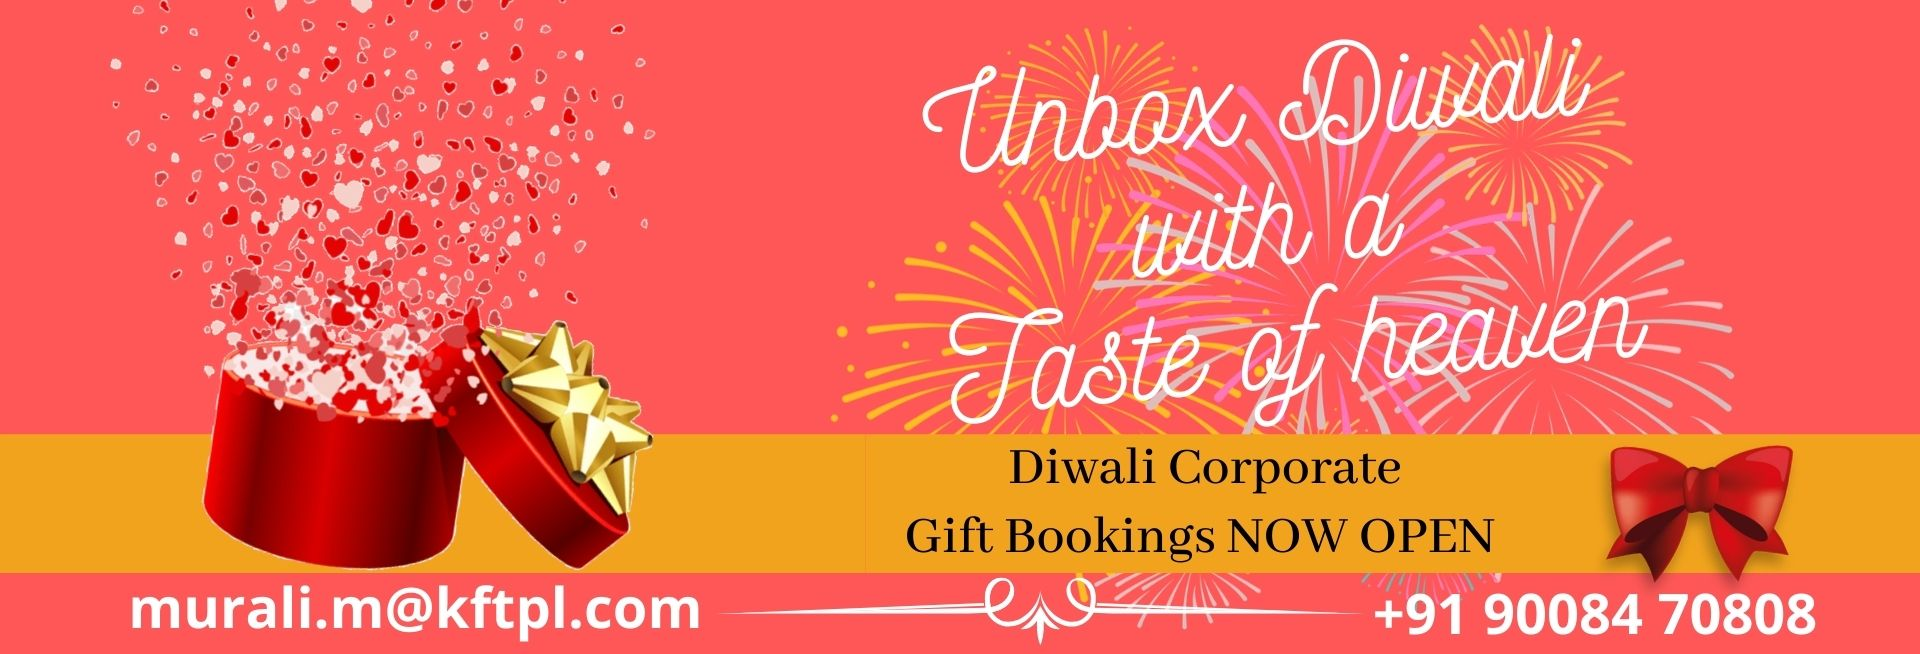 Diwali Corporate Banner